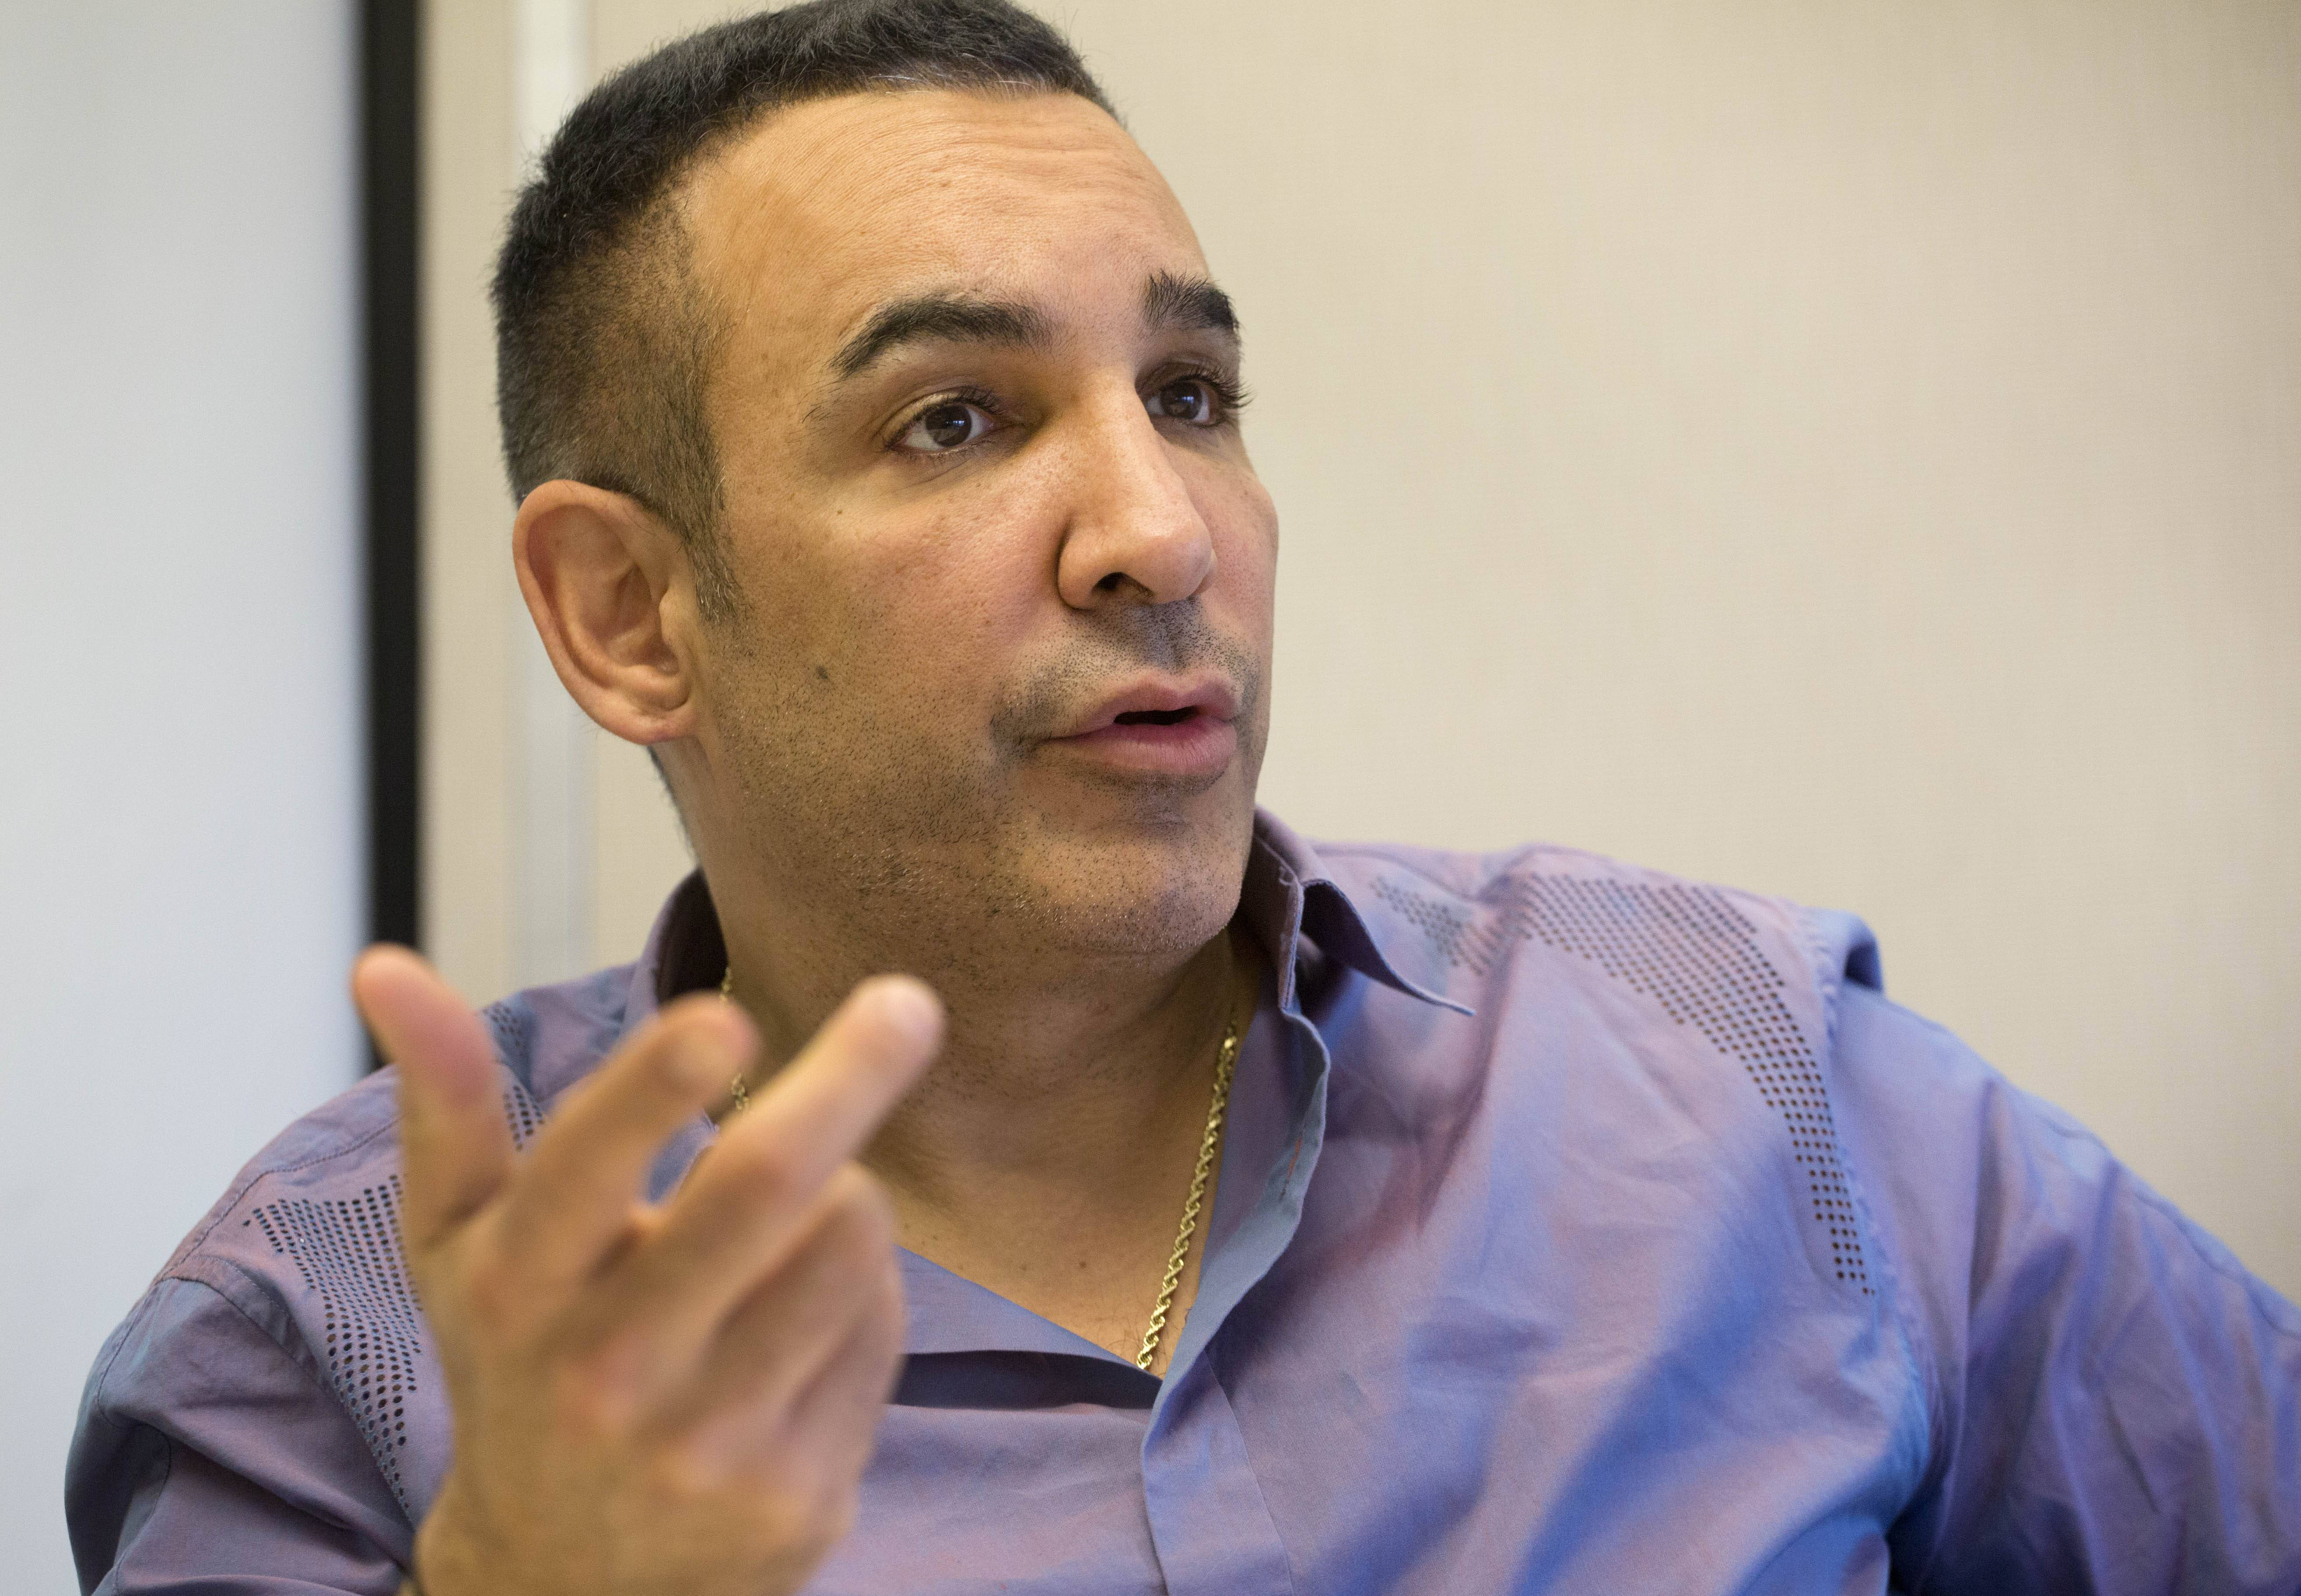 In this March 27, 2014 photo, Alki David, CEO of FIlmOn, is interviewed at The Associated Press in New York. FilmOn offers over-the-air TV channels through a website and mobile apps.